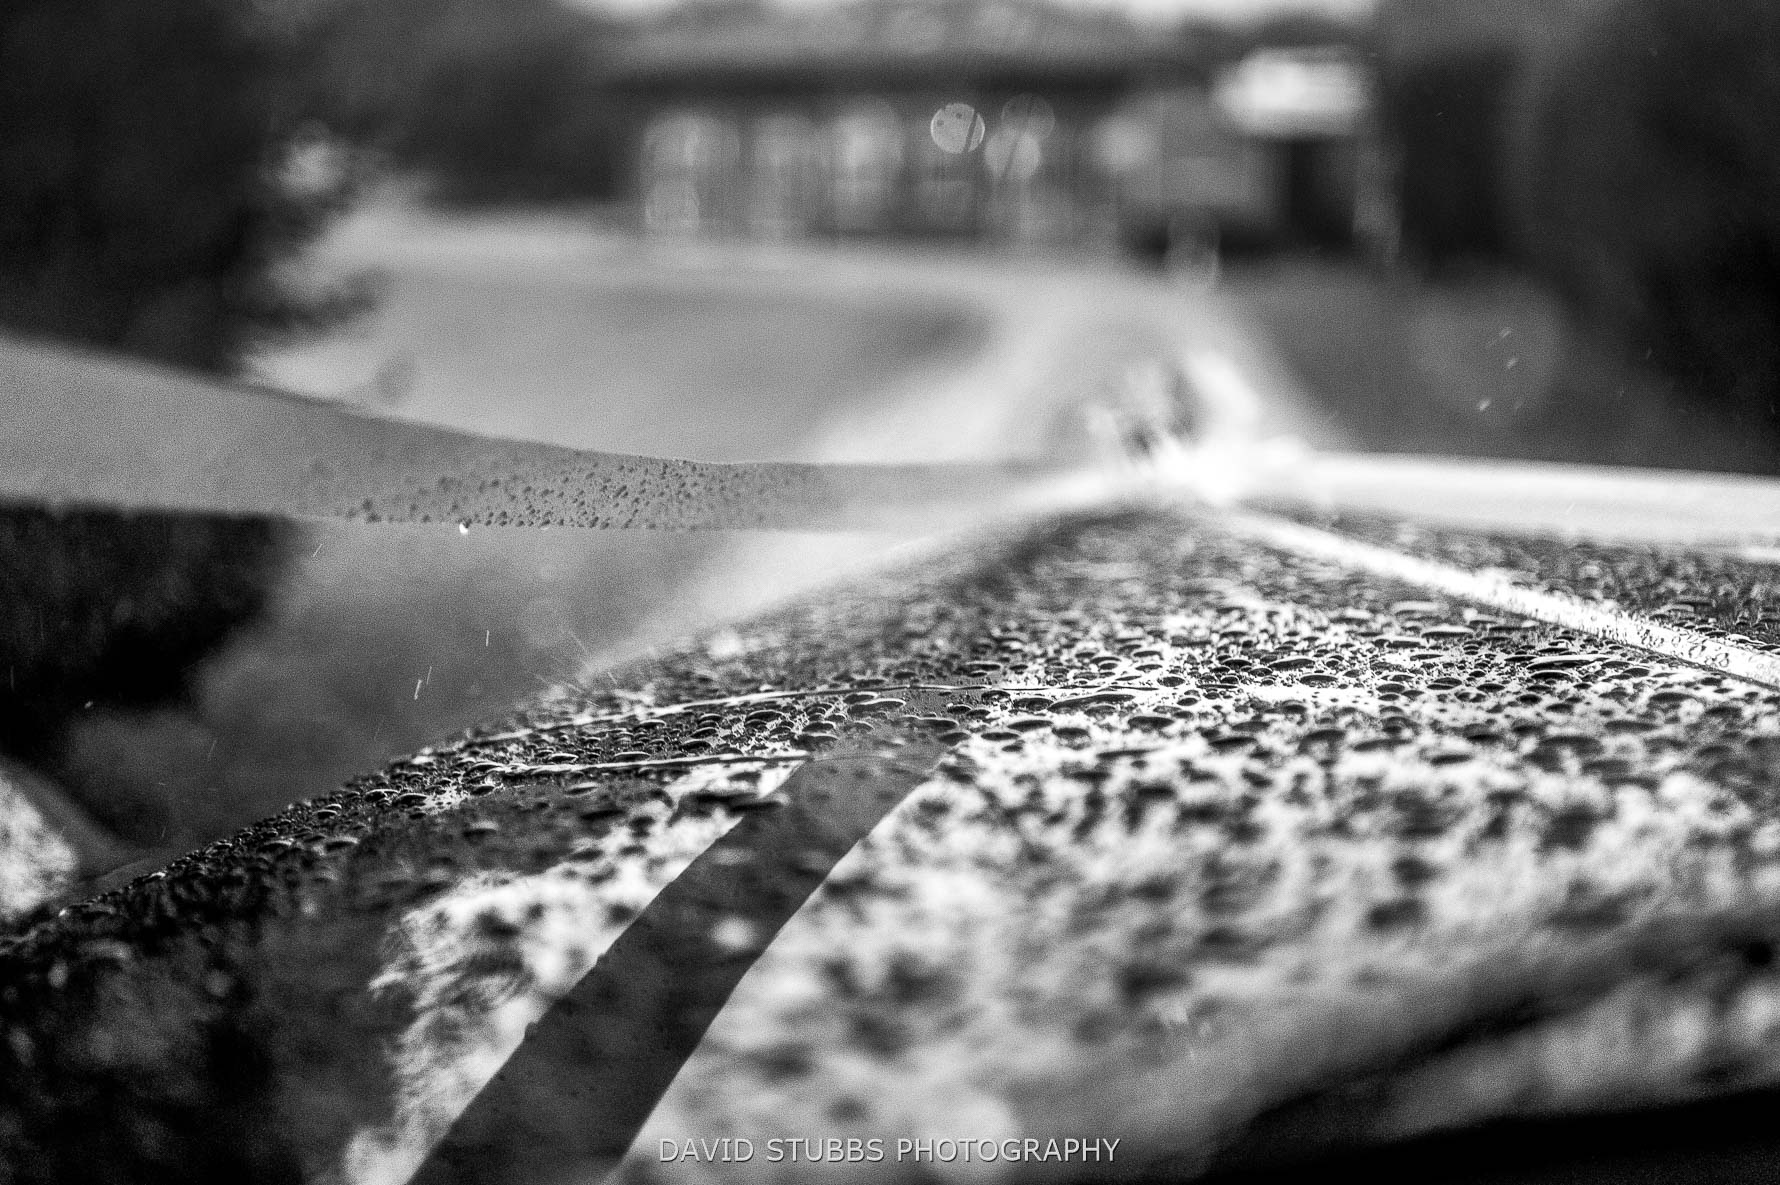 rain droplets on car bonnet